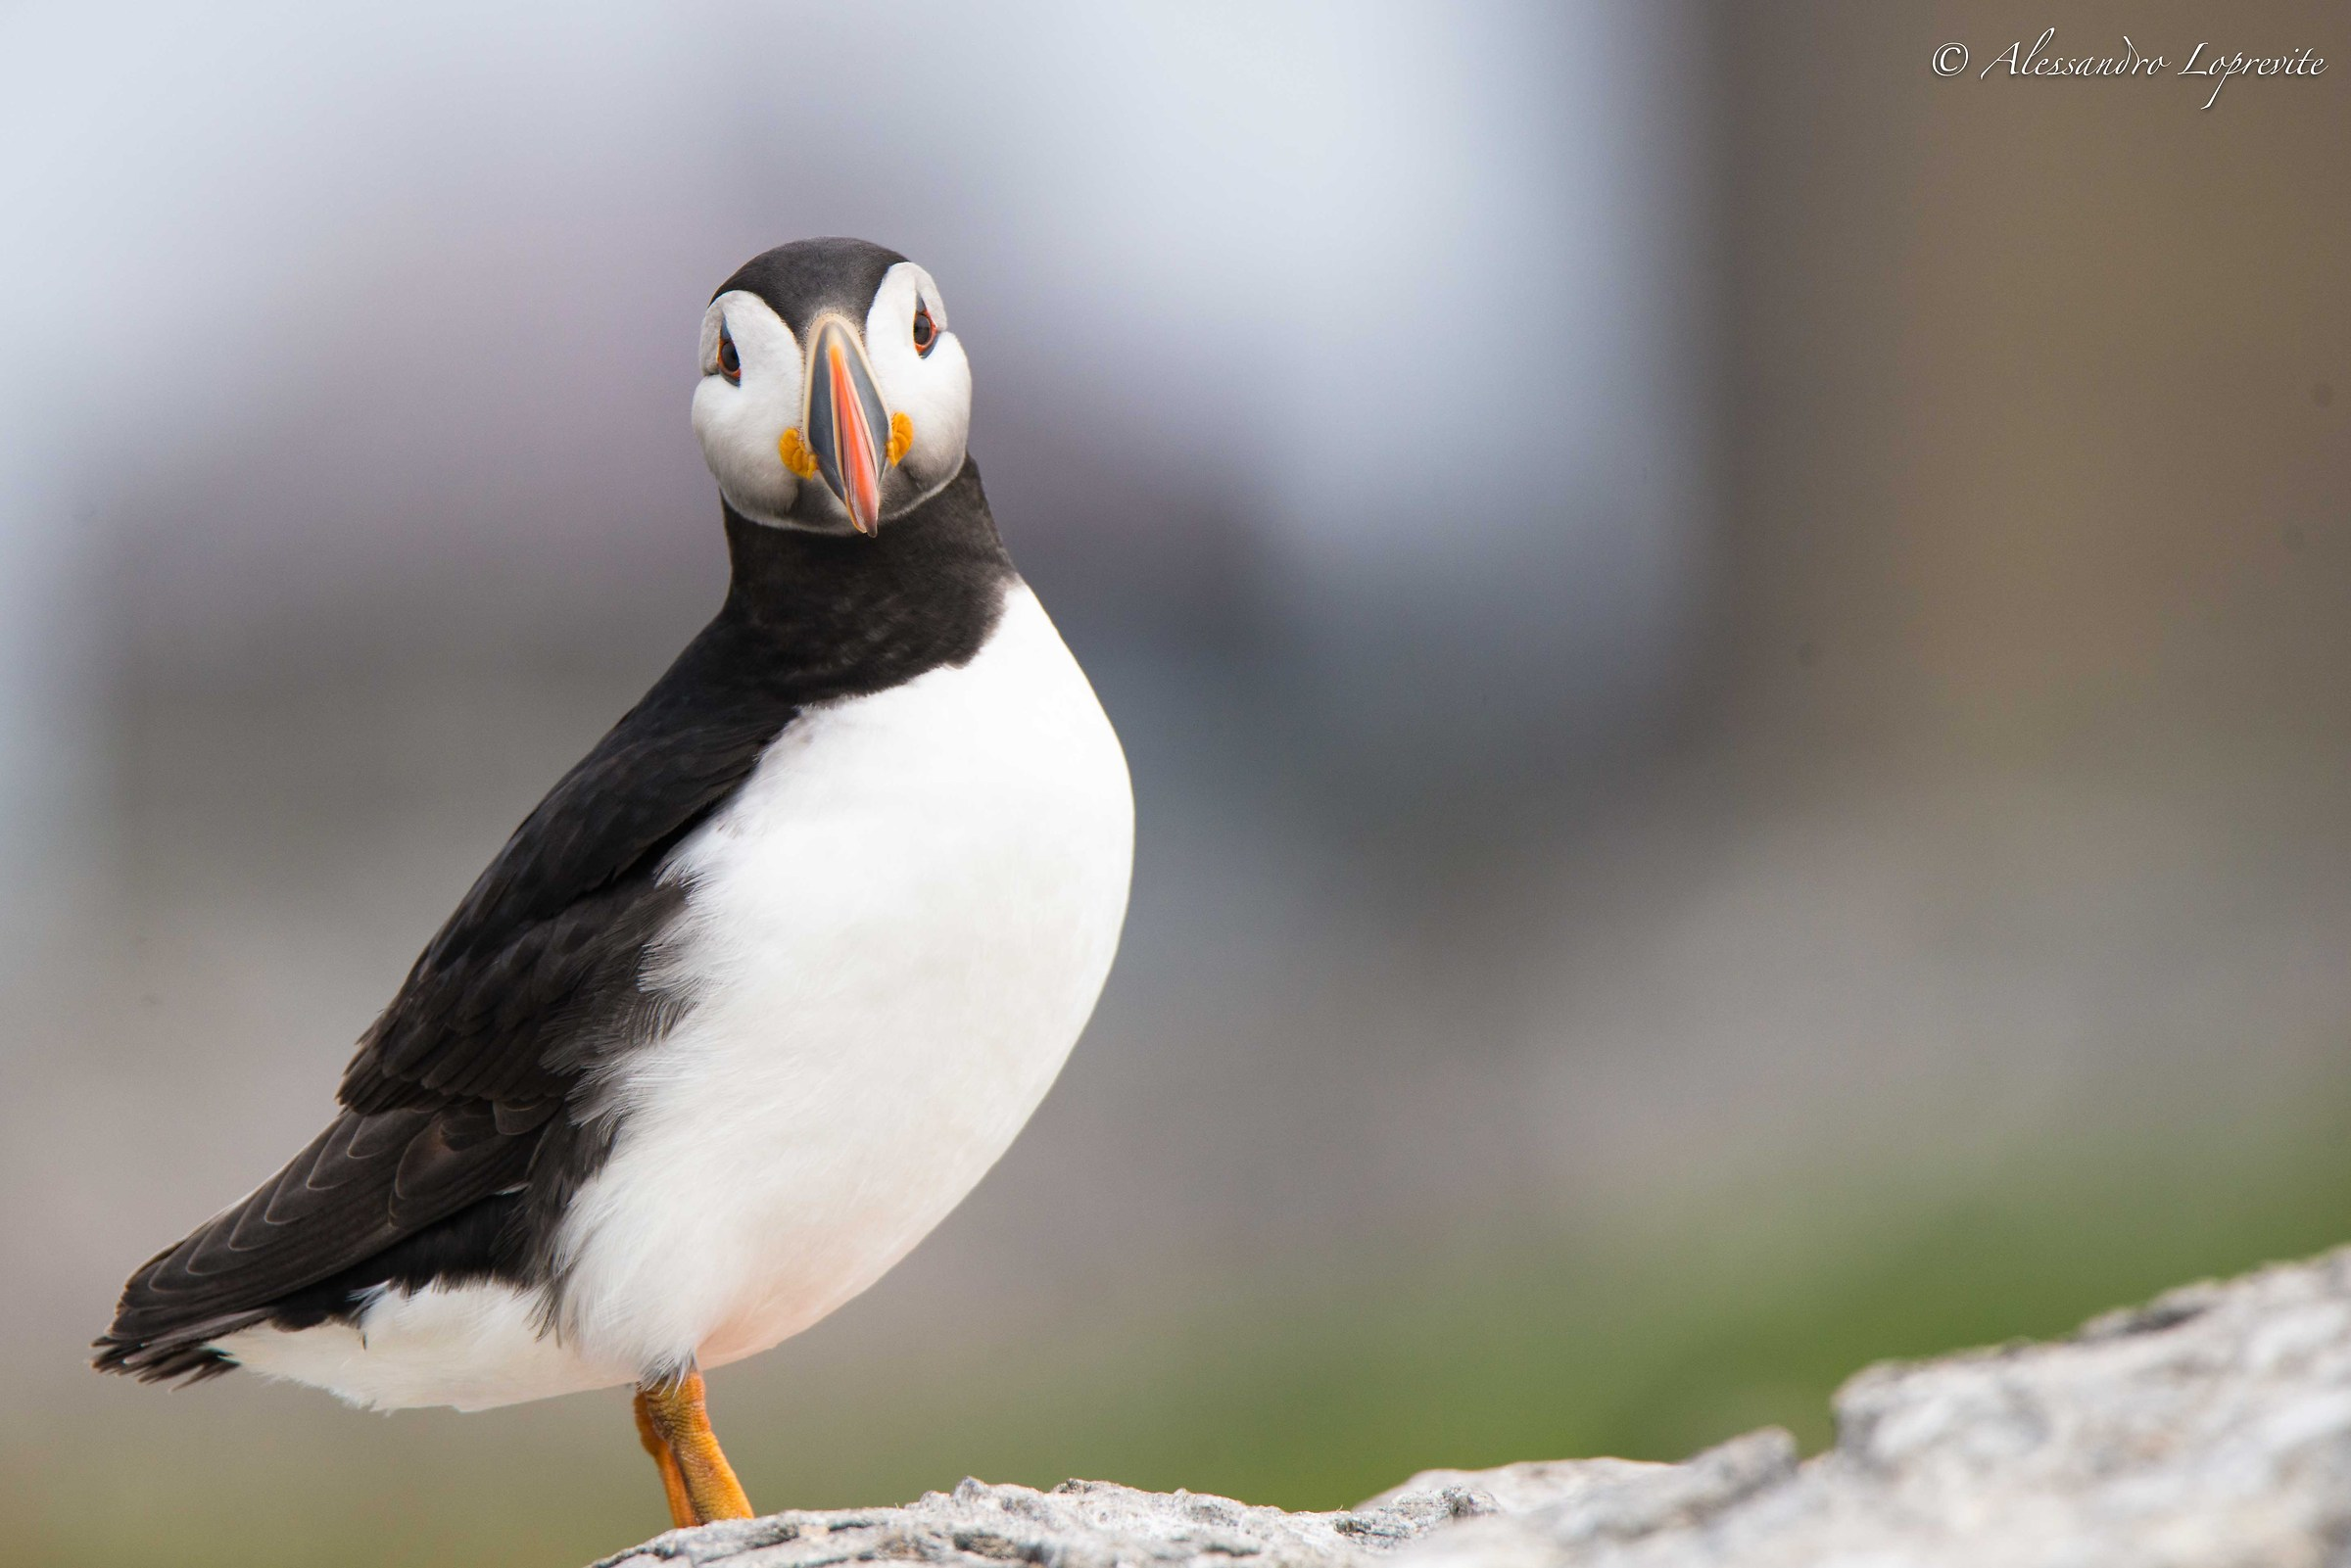 First Puffin...